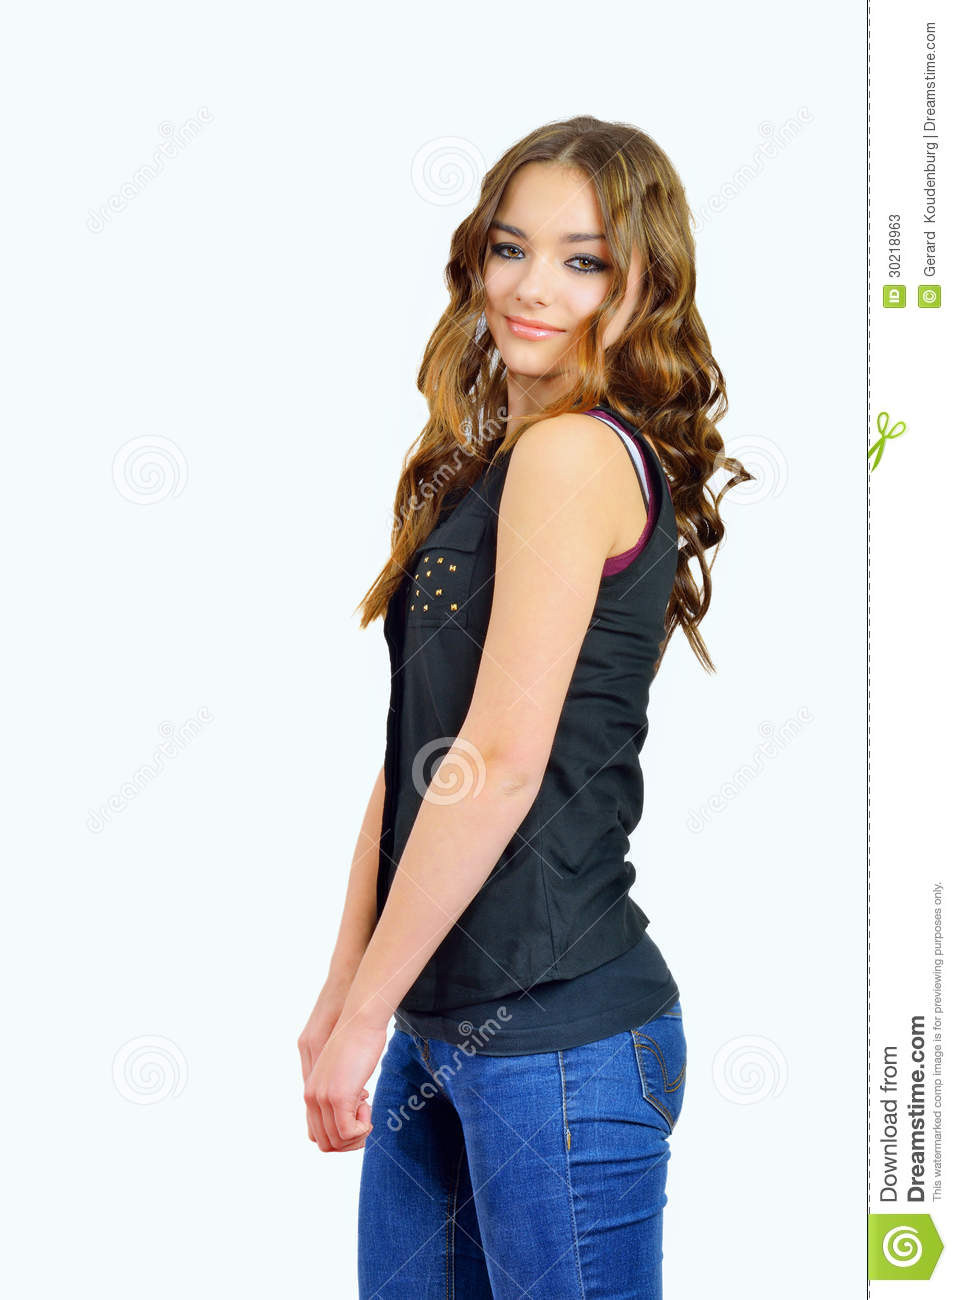 Fashion girl in blue jeans stock photos image 30218963 Ciaafrique fashion beauty style